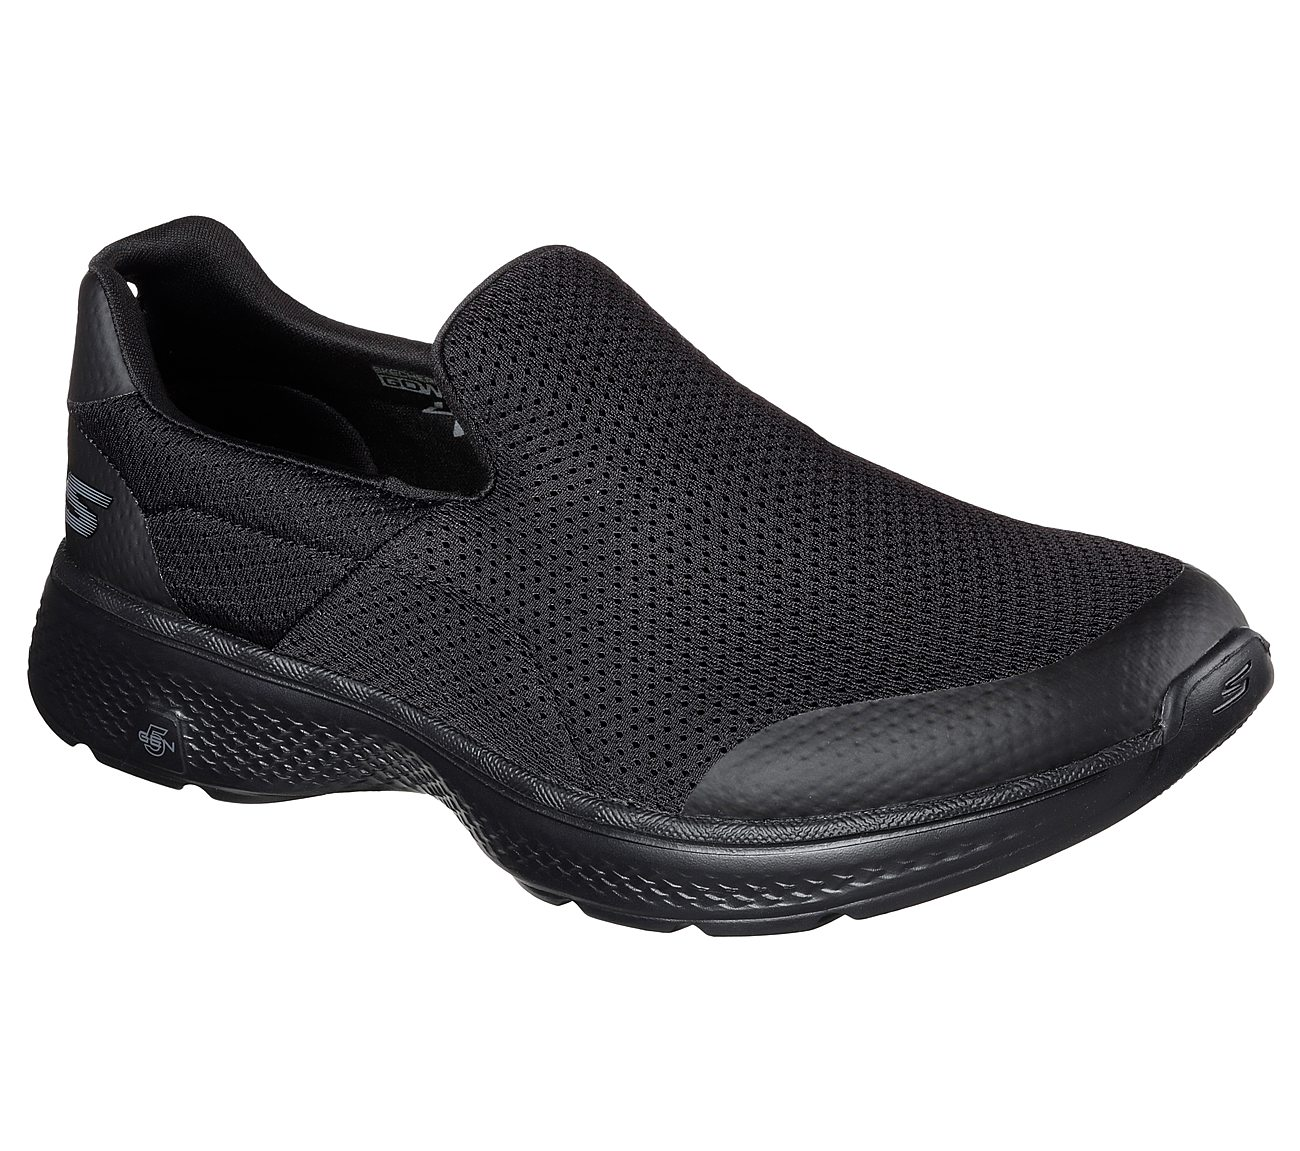 Skechers Gowalk 4 Men/'s Shoes In Black Size 12.